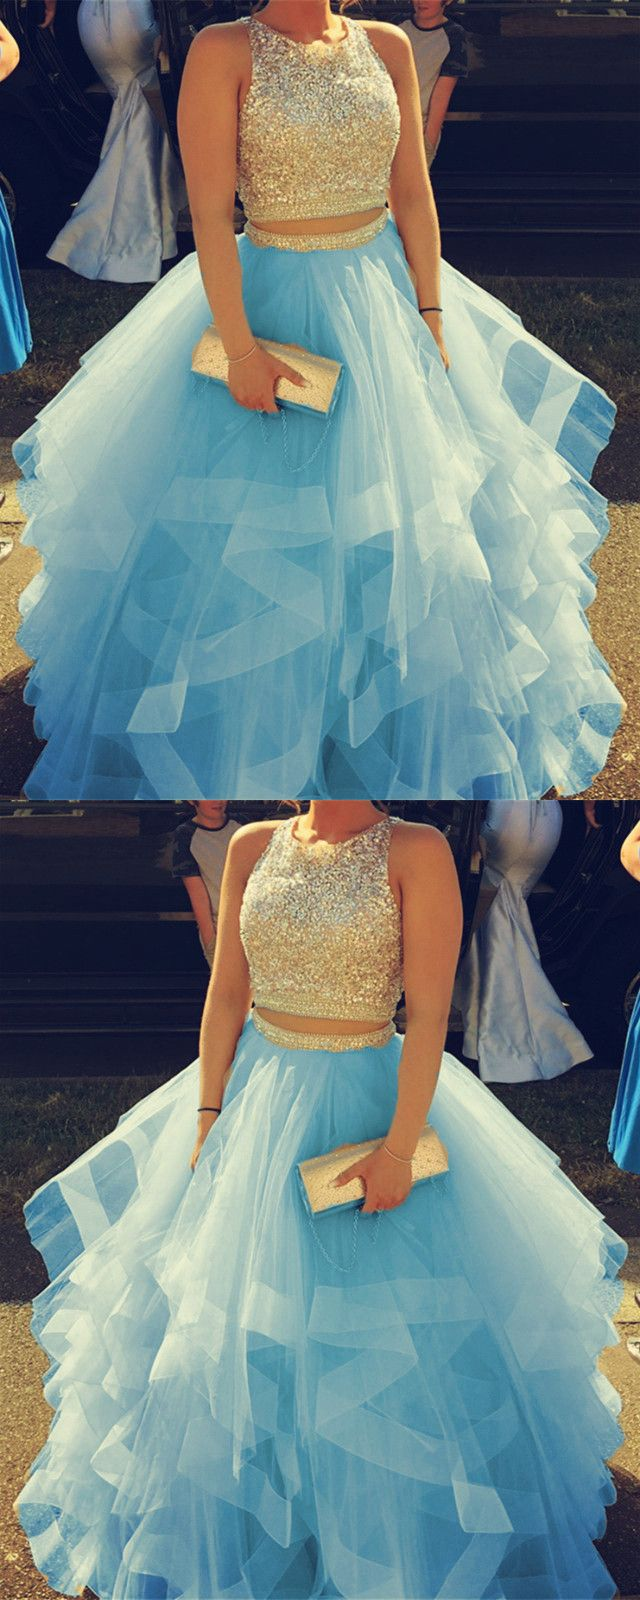 Sparkly Sequins Beaded Organza Layered Ball Gowns Prom Dresses Two Piece